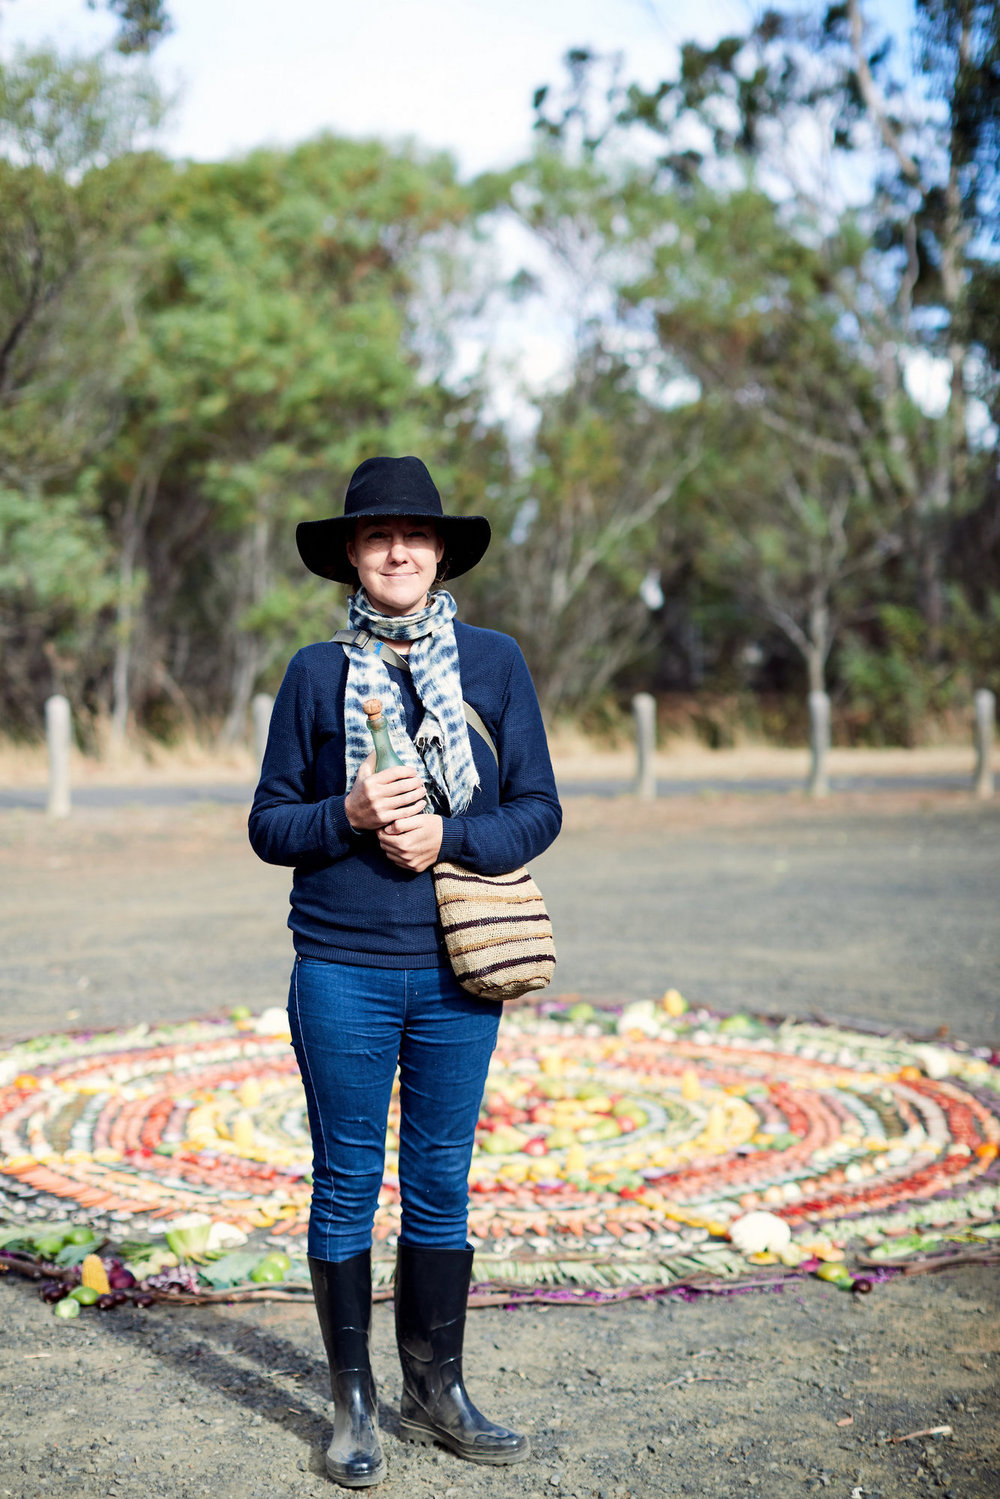 Artist Emma Anna at her walking circle at station 2; Photographer: Ed Sloane